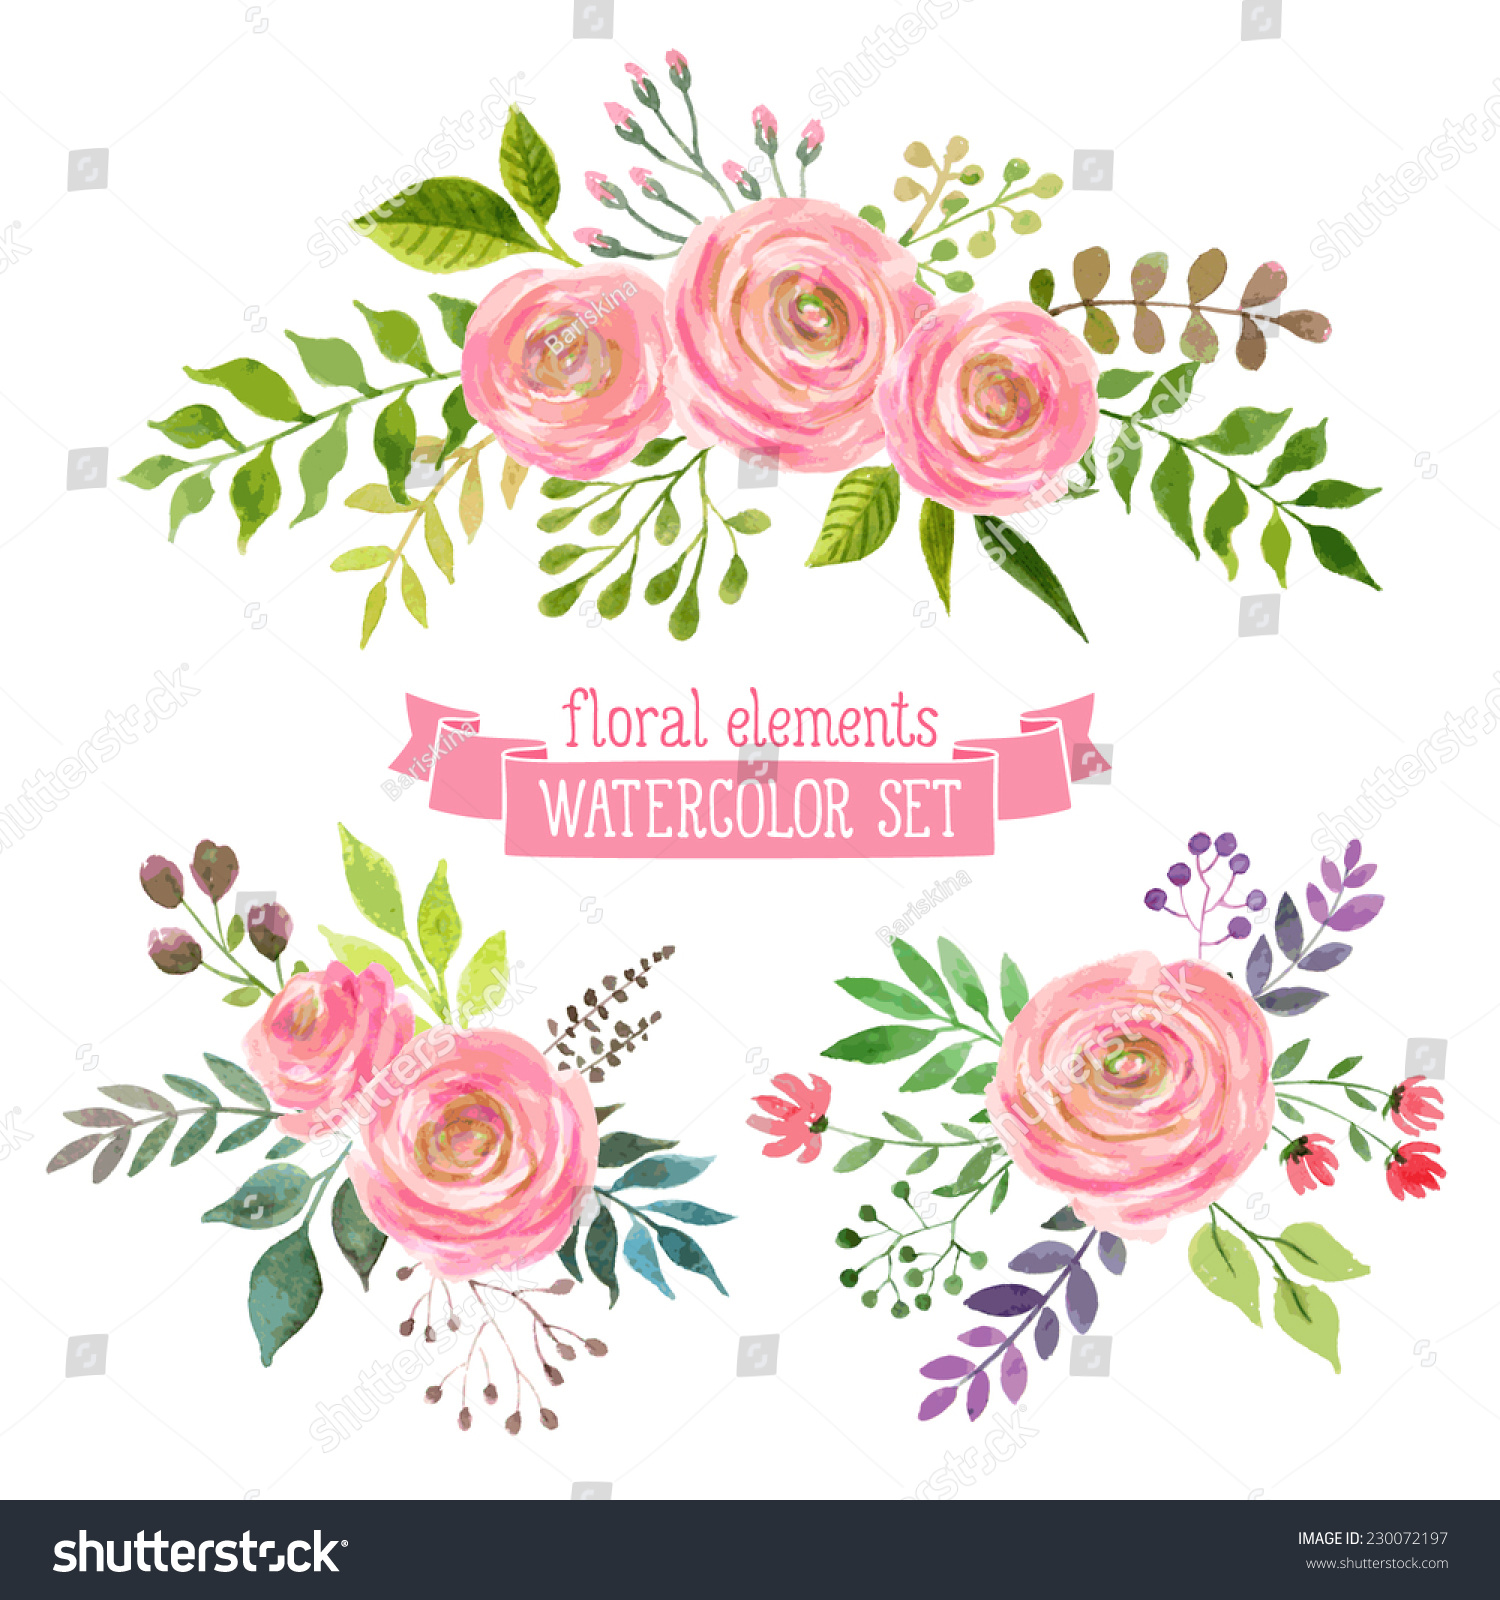 Royalty Free Vector Flowers Set Colorful Floral 230072197 Stock